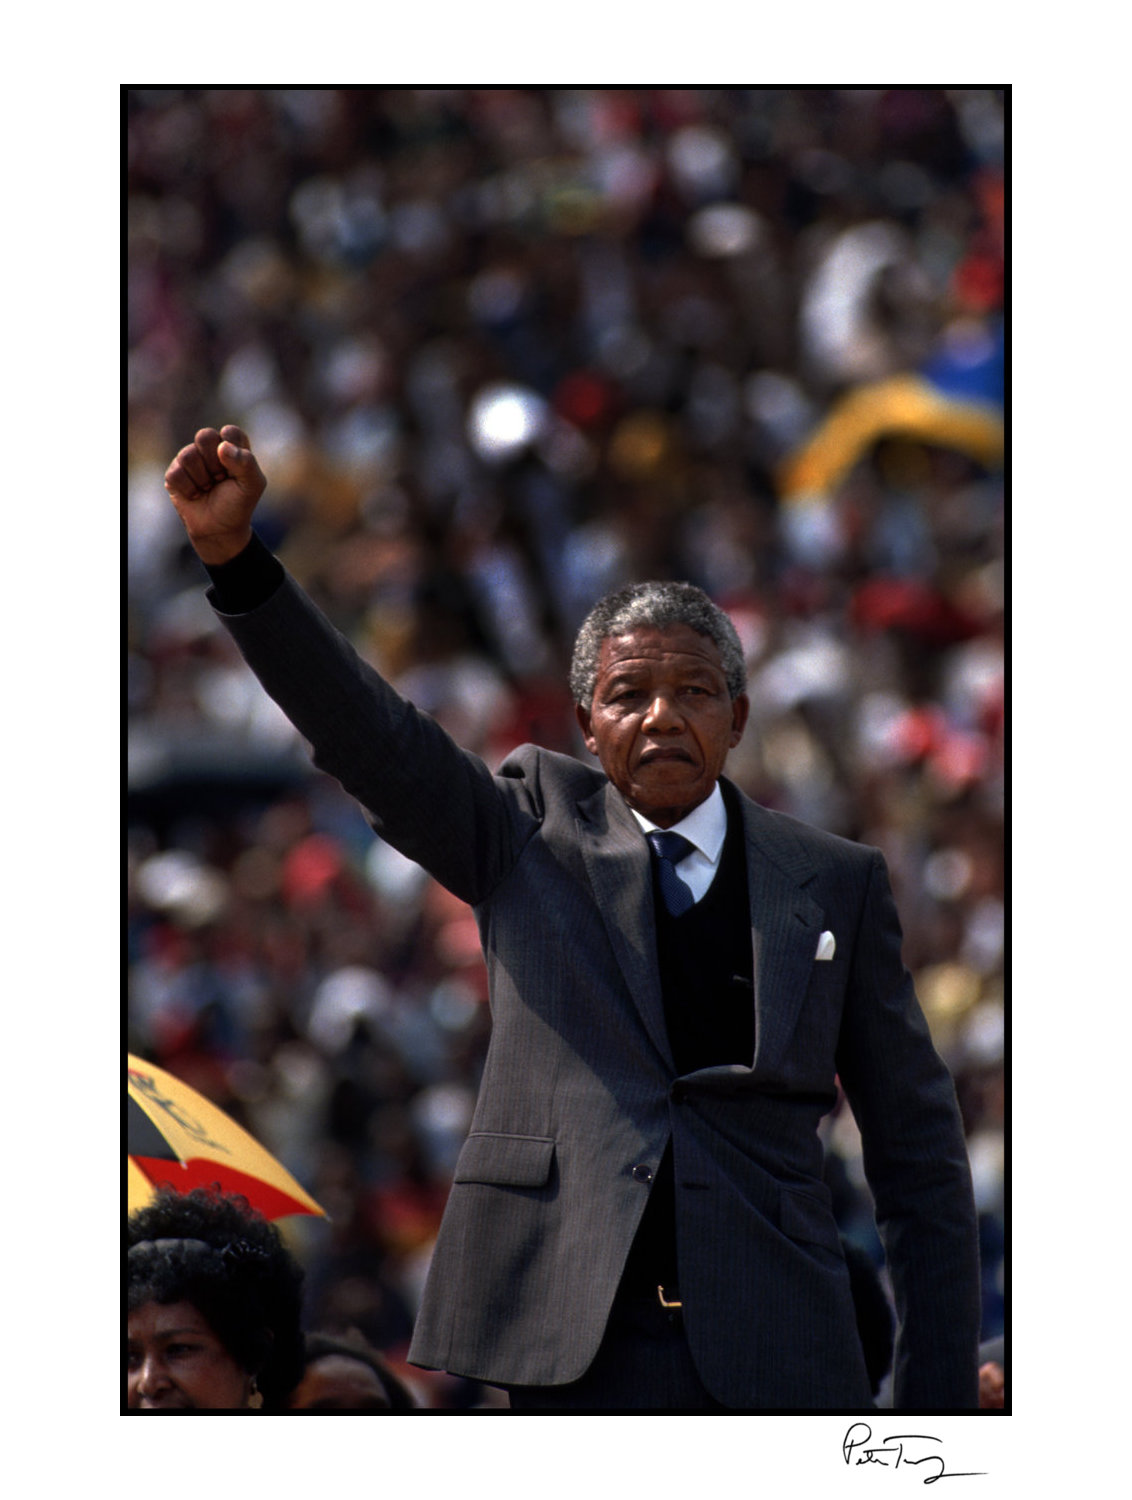 "ID #52・Nelson Mandela, 1990<span class=""print-link""><span class=""separator"">・</span><a onclick='document.getElementsByClassName(""sqs-lightbox-close"")[0].click();'>Thumbnails</a></span>"